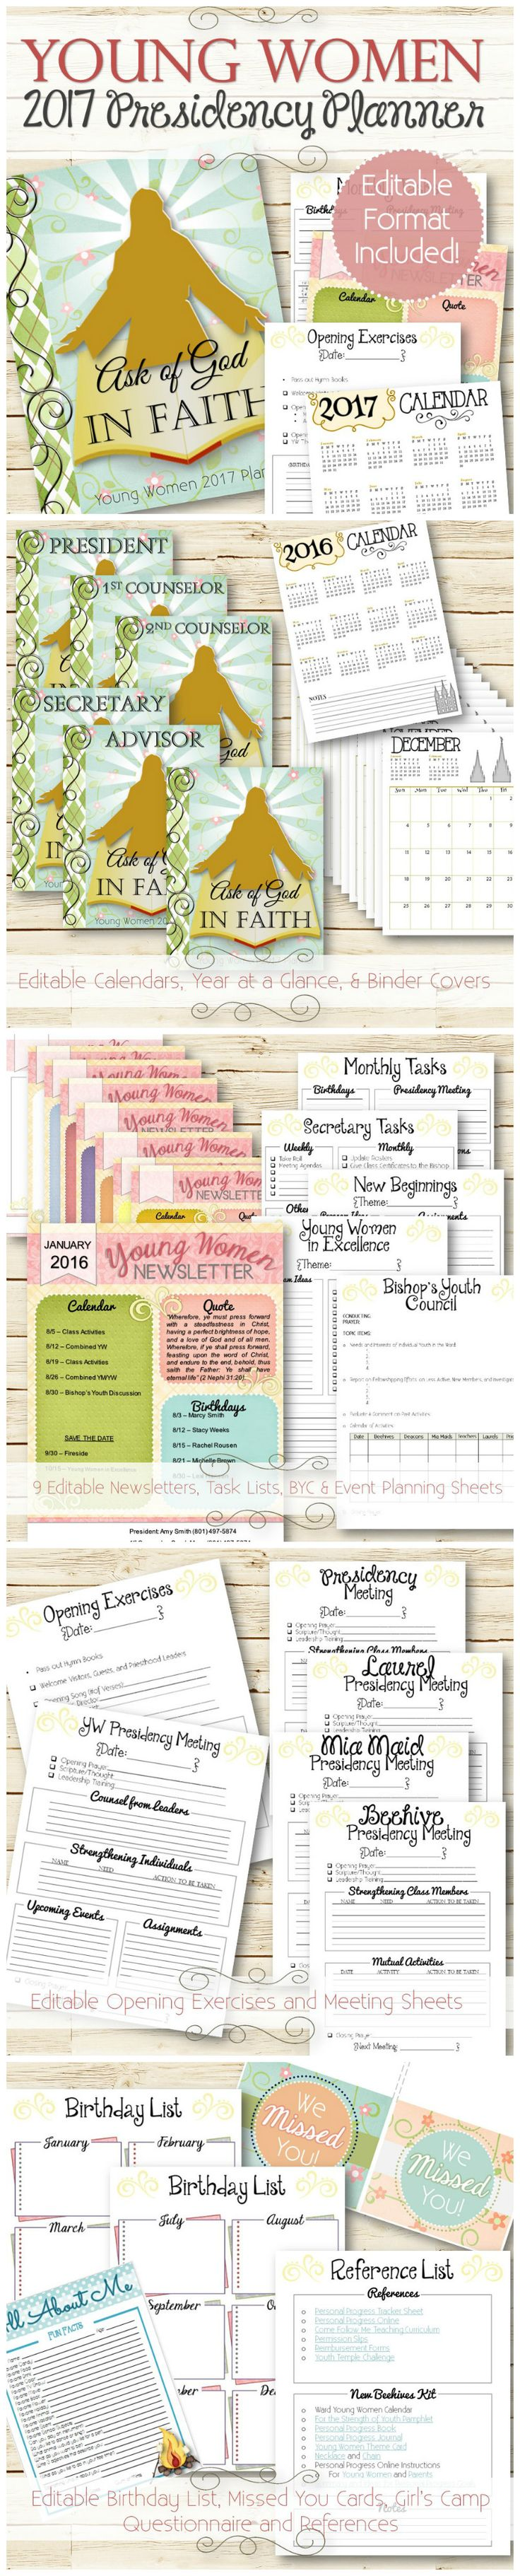 """2017 Young Women Presidency Planner, now included with an editable Word file so you can change and add text! Birthday lists, Monthly Task lists, BYC Sheet, Conducting Sheets, Presidency Meeting sheets, Newsletters, Calendars and more! Goes along with the 2017 YW """"Ask of God..in Faith"""" Theme."""